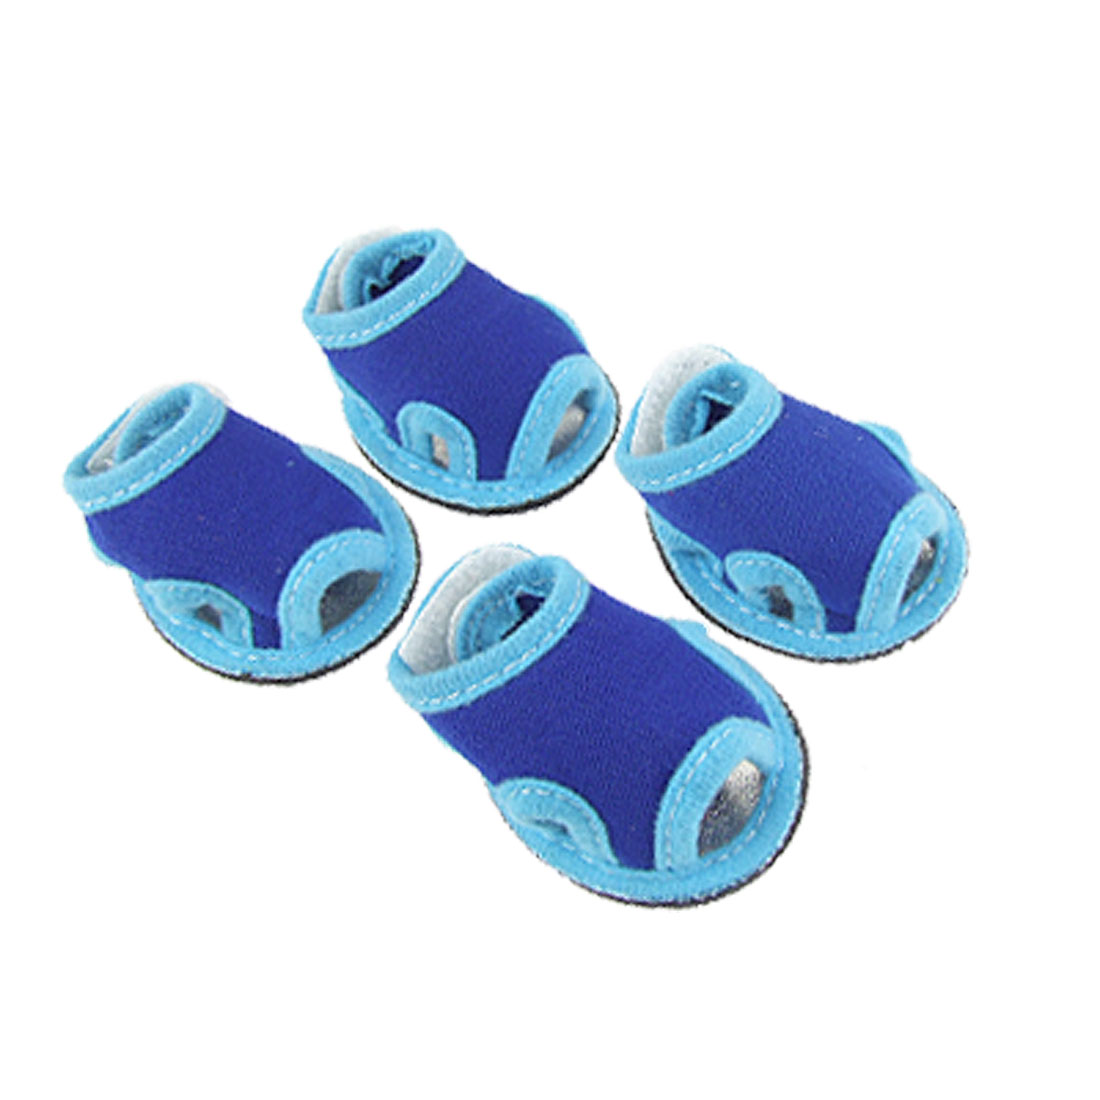 4 Pcs Pet Dog Nonslip Soles Skyblue Navy Blue Open Toe Sandals Shoes Size 2